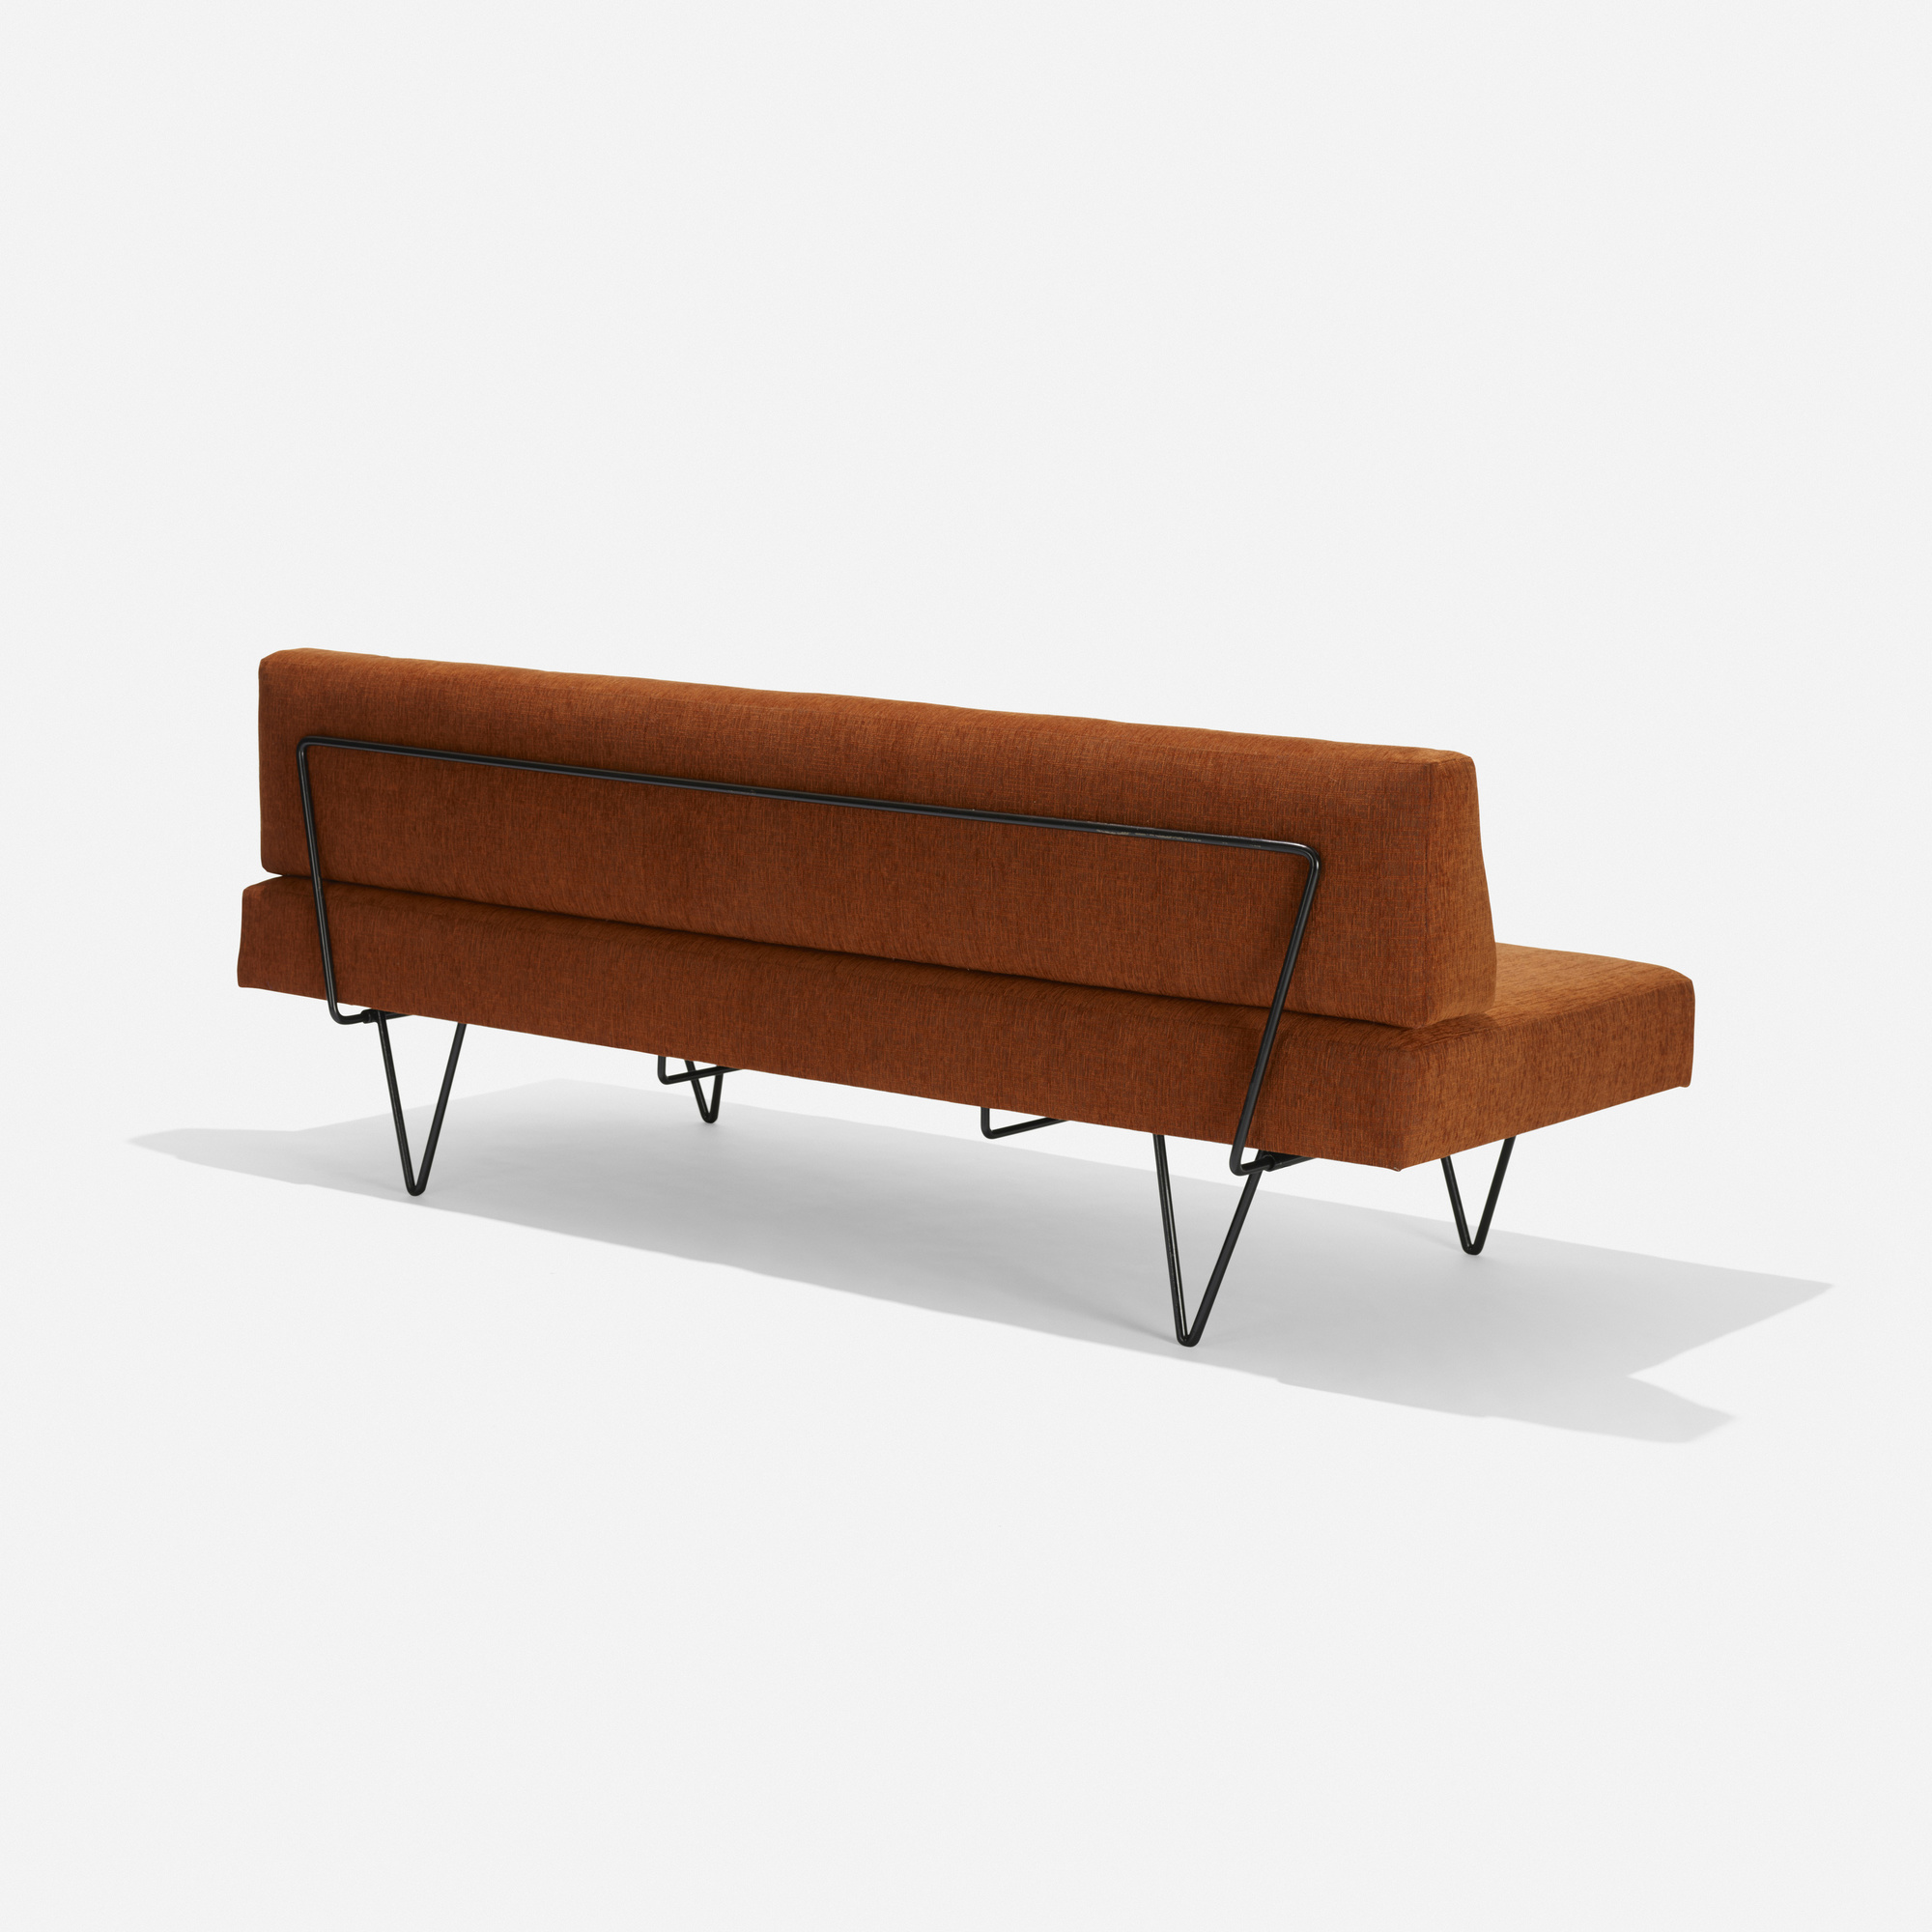 173: Adrian Pearsall / daybed, model 102-L (1 of 3)